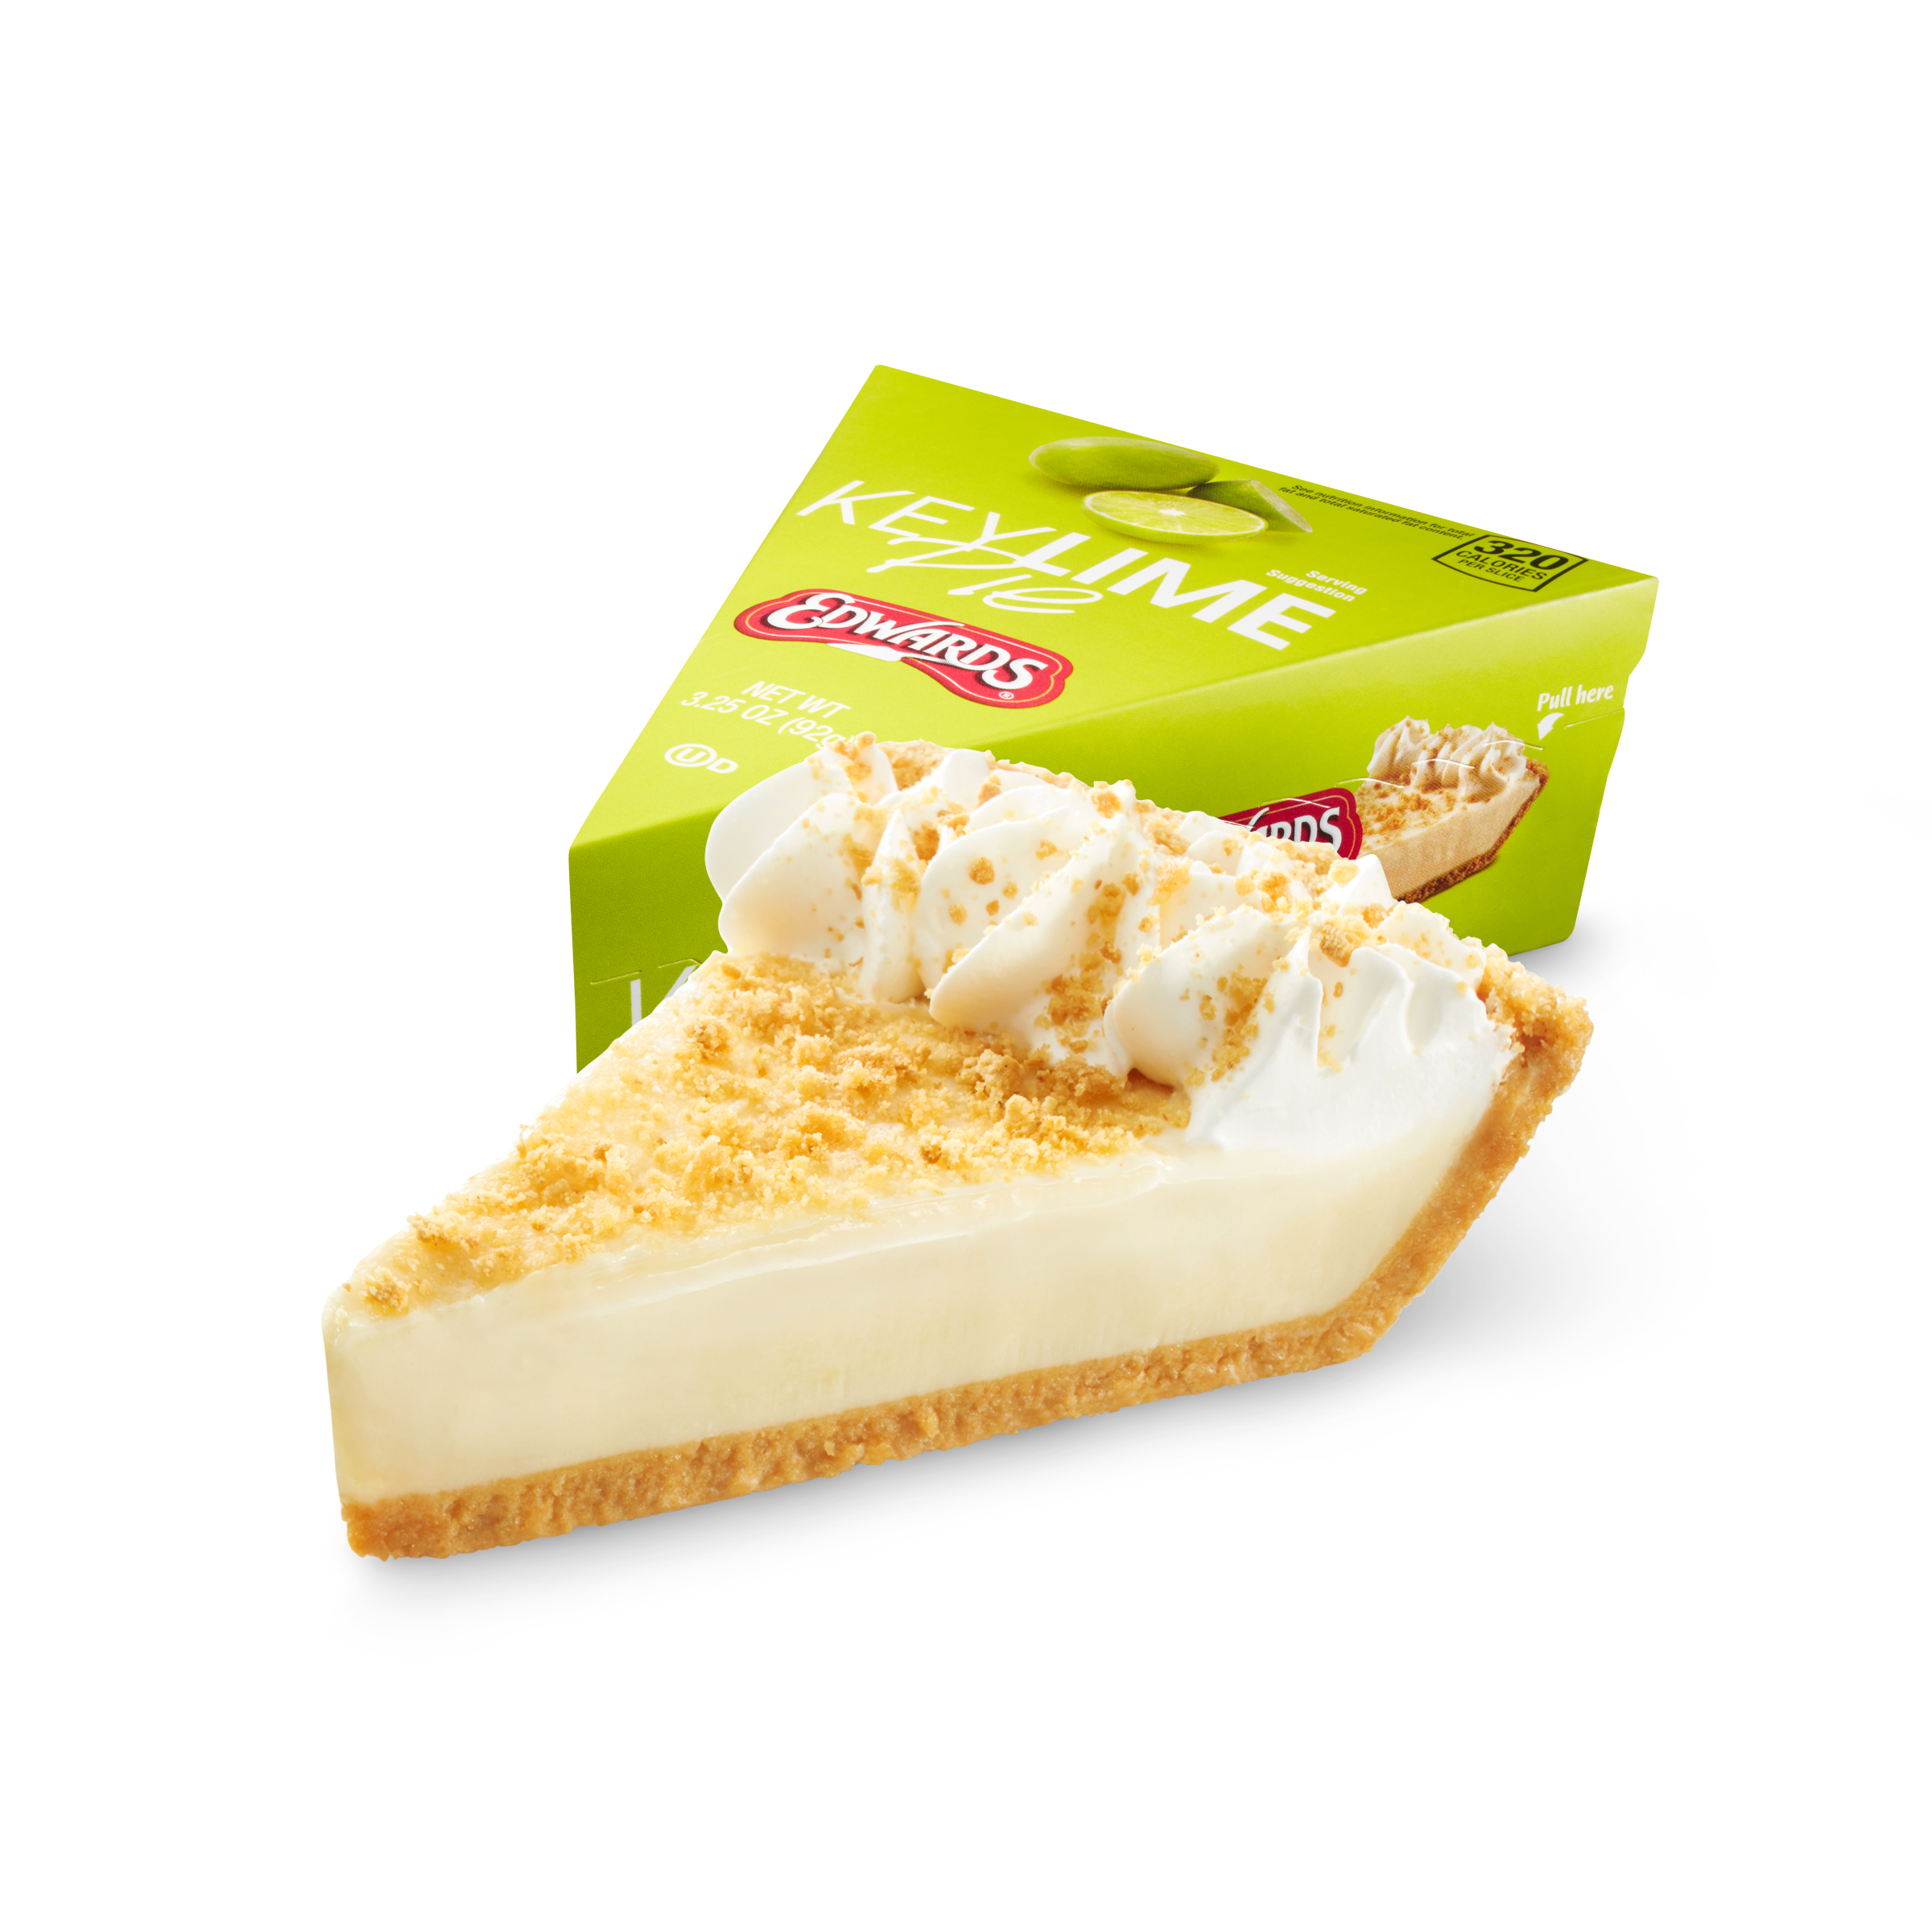 edwards_singles_key_lime_creme_pie_iw-70768